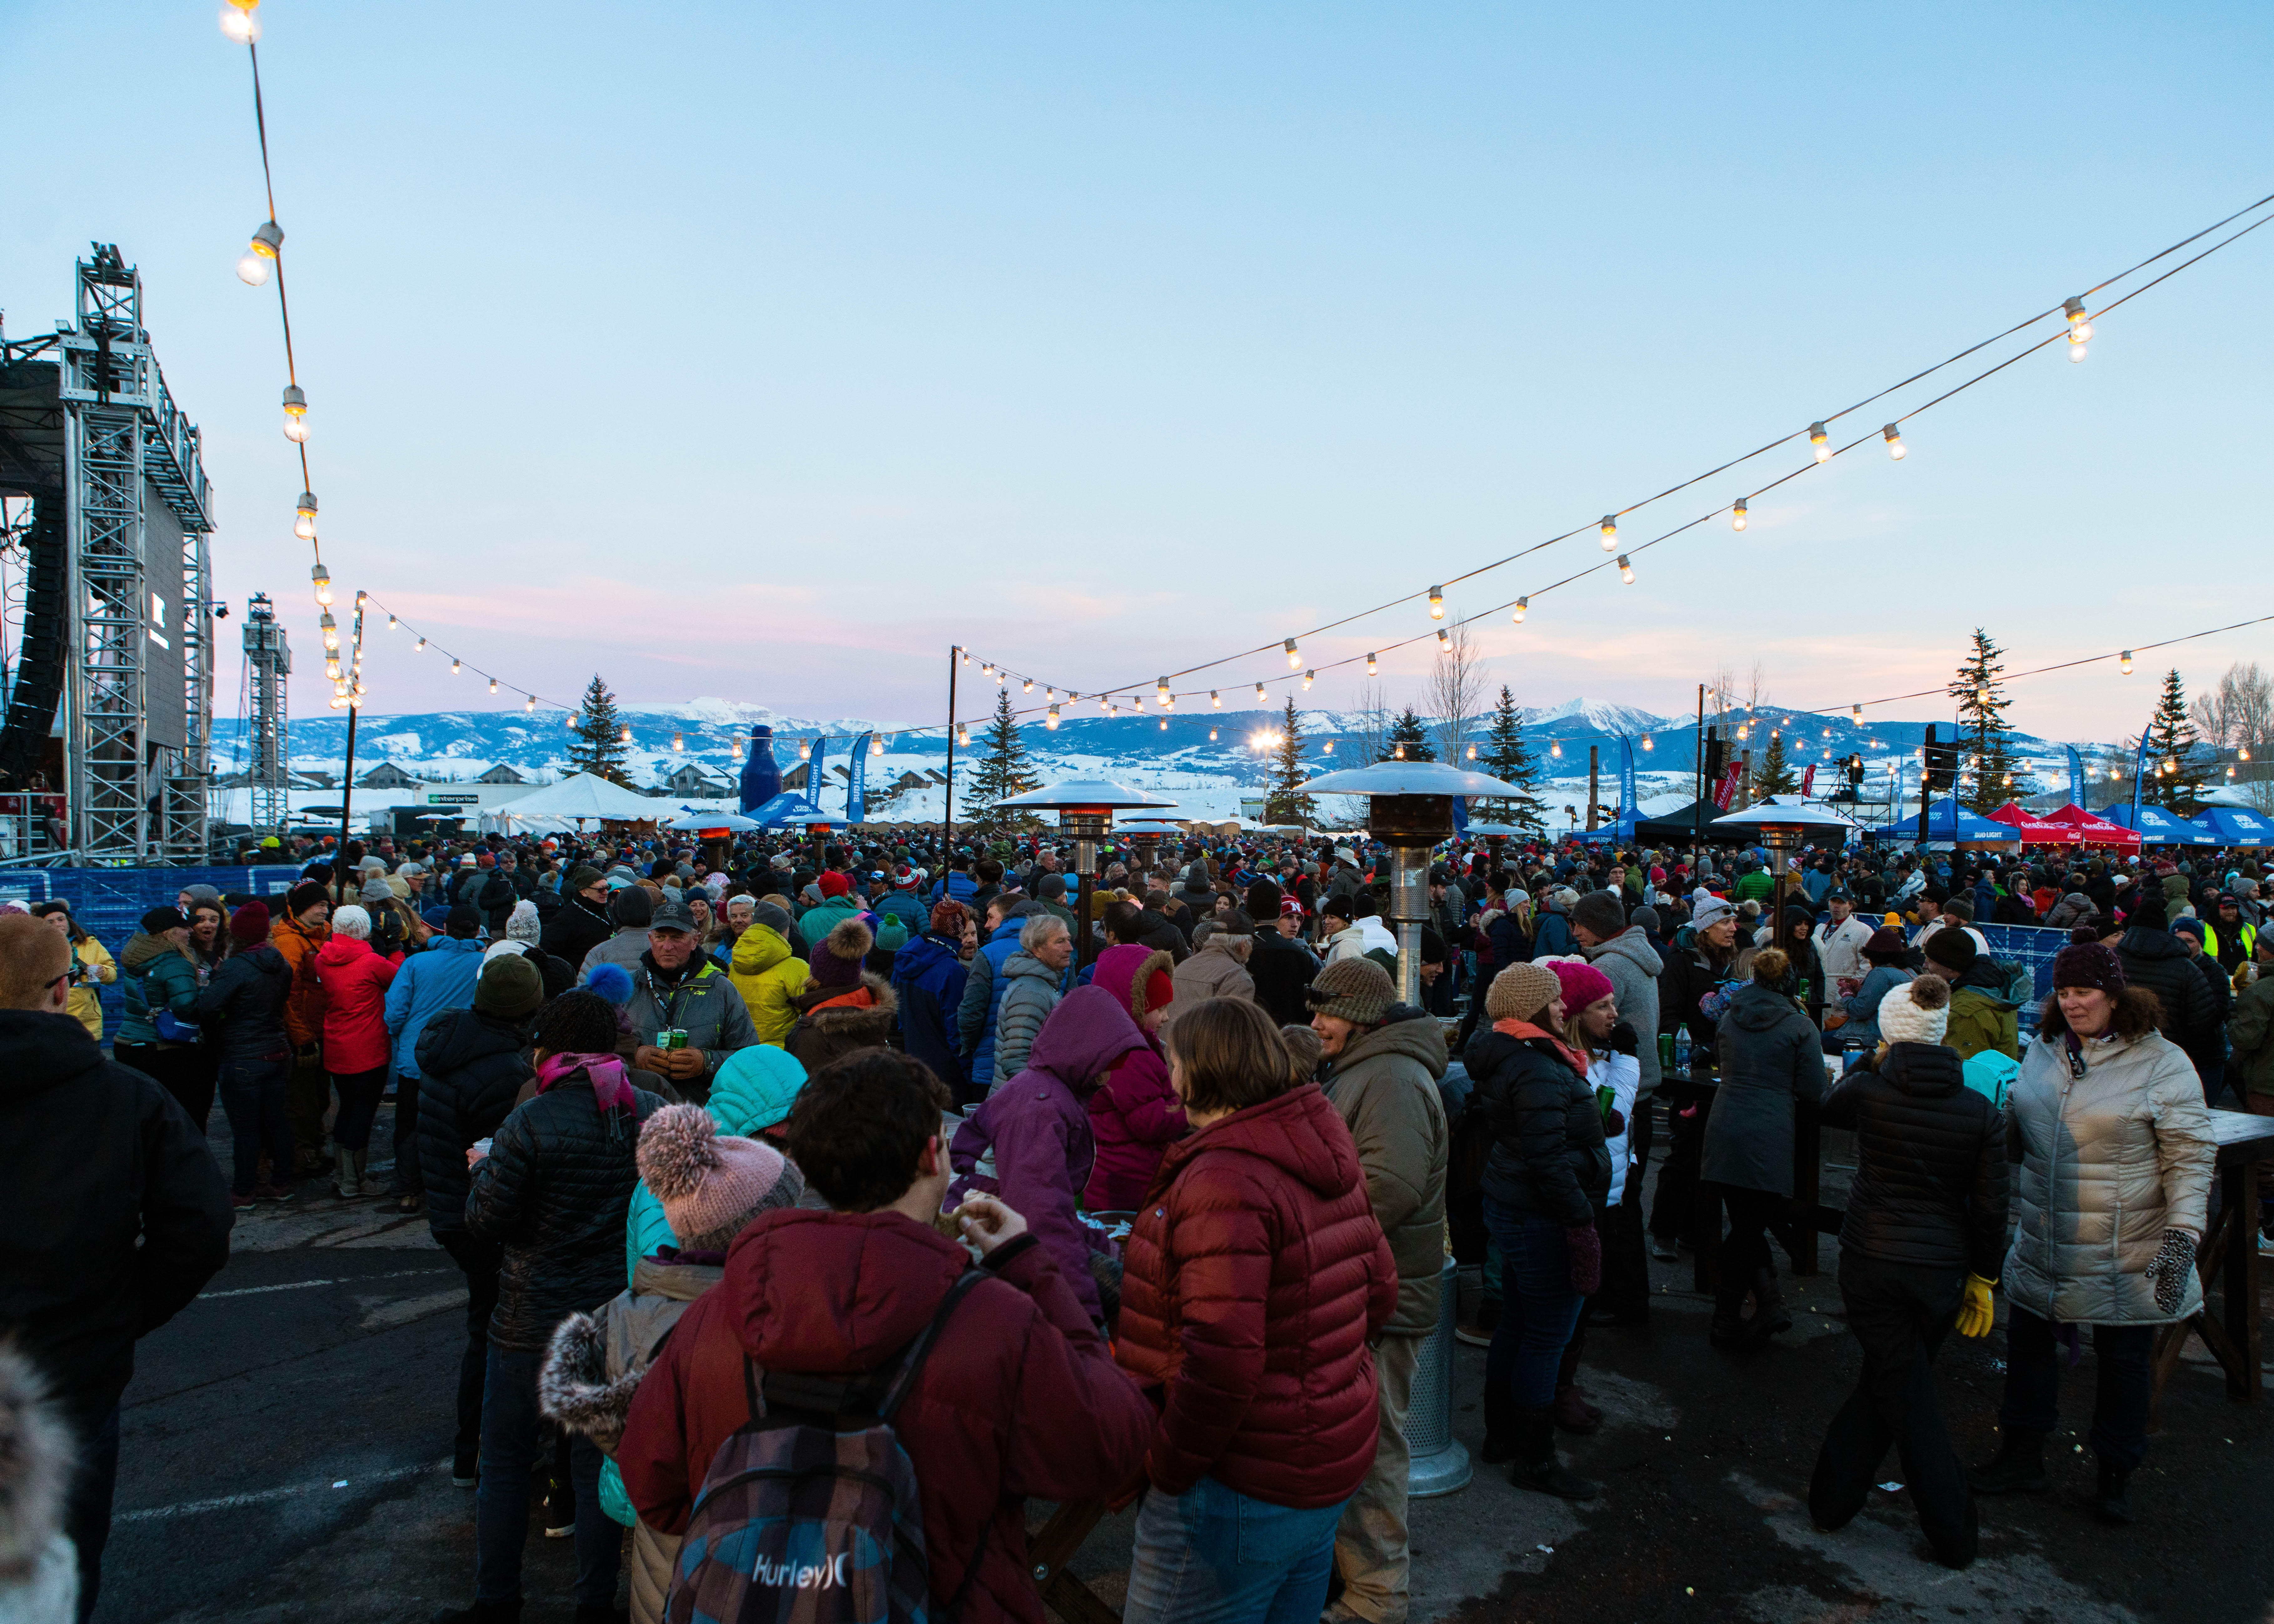 Festival goers at Rendezvous Festival mingle alongside the stage. Overlooking beautiful mountain views.